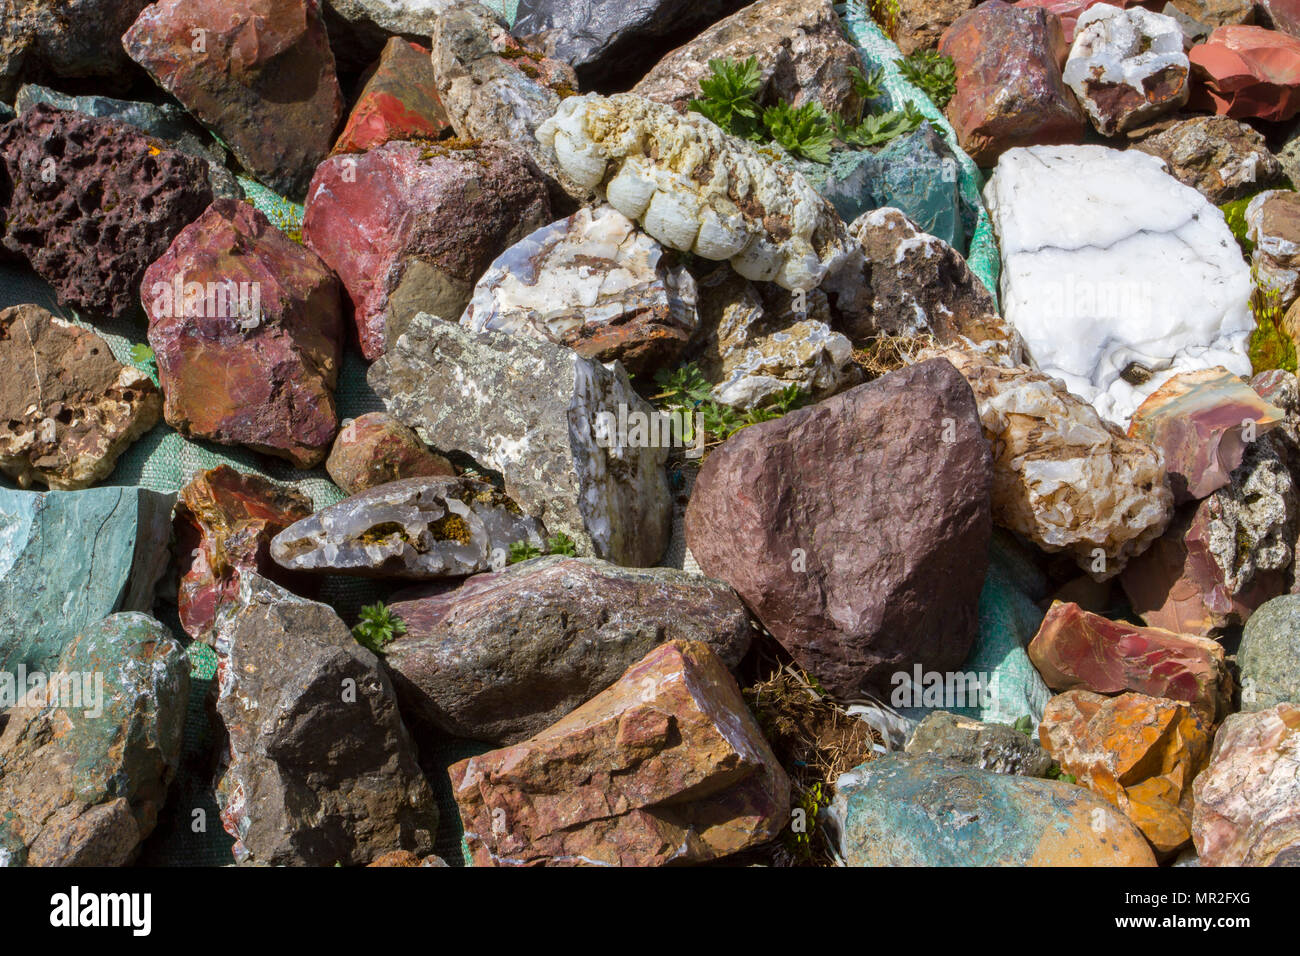 Minerals or clasts, igneous, sedimentary and metamorphic rocks of Iceland - Stock Image